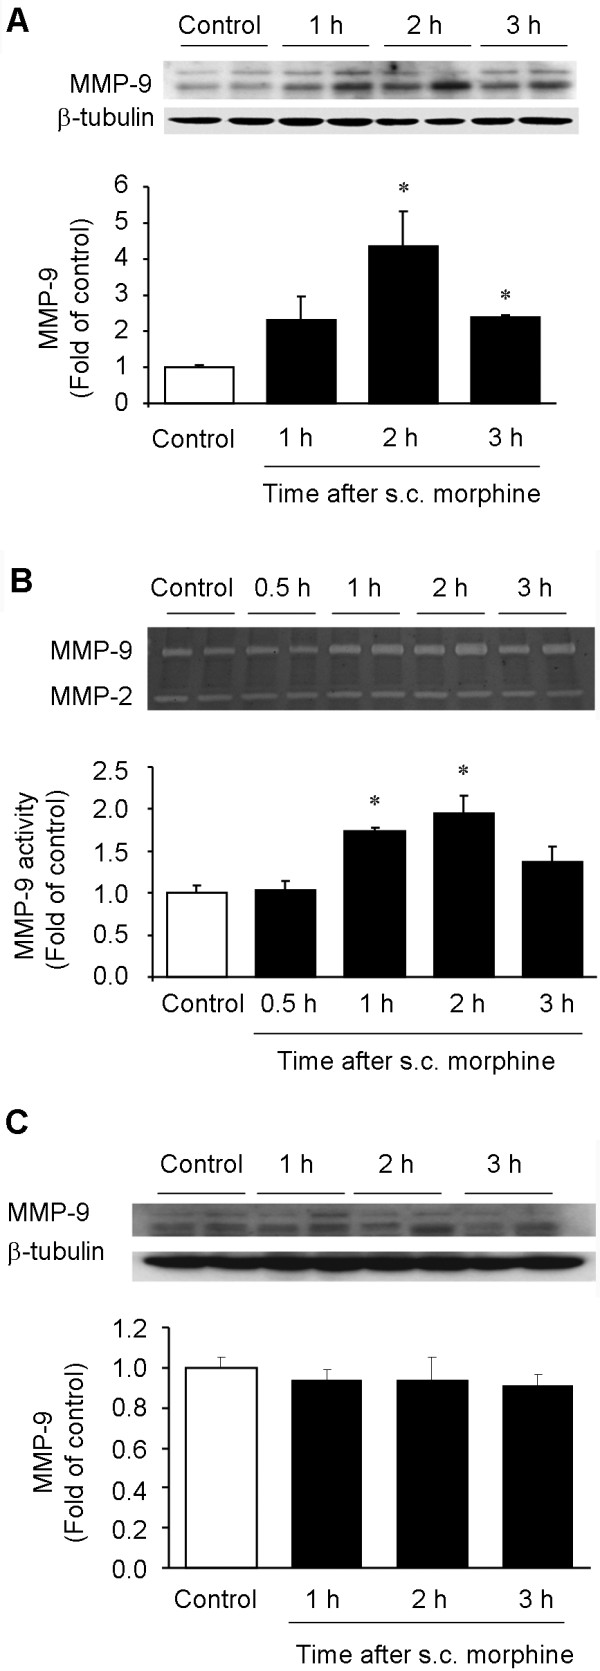 Subcutaneous morphine increases MMP-9 expression and activity in DRGs . (A) Western blotting showing the time course of MMP-9 expression in lumbar DRGs after morphine (s.c., 10 mg/kg). (B) Gelatin zymography showing the time course of MMP-9 activity in lumbar DRGs after morphine. Note that MMP-2 activity remains unchanged after morphine injection. (C) Western blotting showing the time course of MMP-9 expression in lumbar spinal cord dorsal horns after morphine (s.c., 10 mg/kg). Note that subcutaneous morphine only induces MMP-9 expression in DRGs but not spinal cords. * P